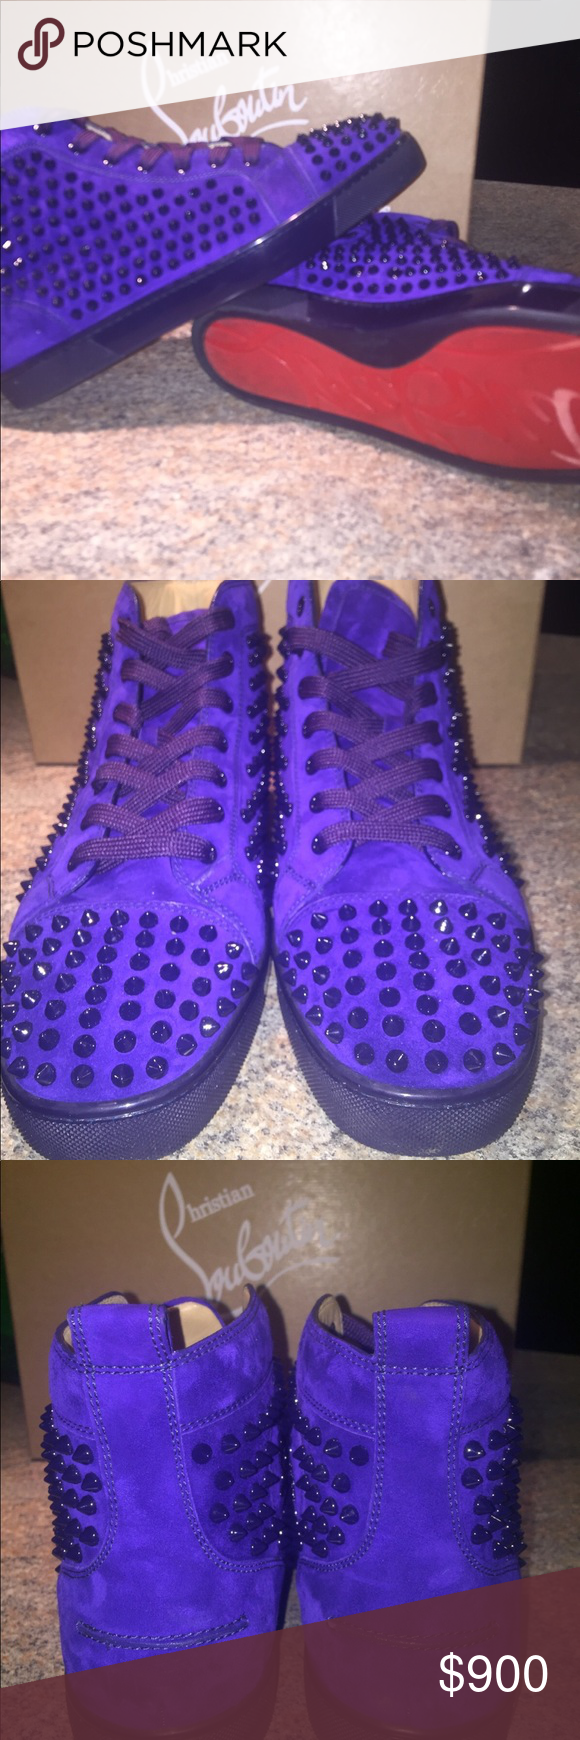 sports shoes 6e21e c51c2 Purple Christian Louboutin Sneakers Preowned *gently worn ...